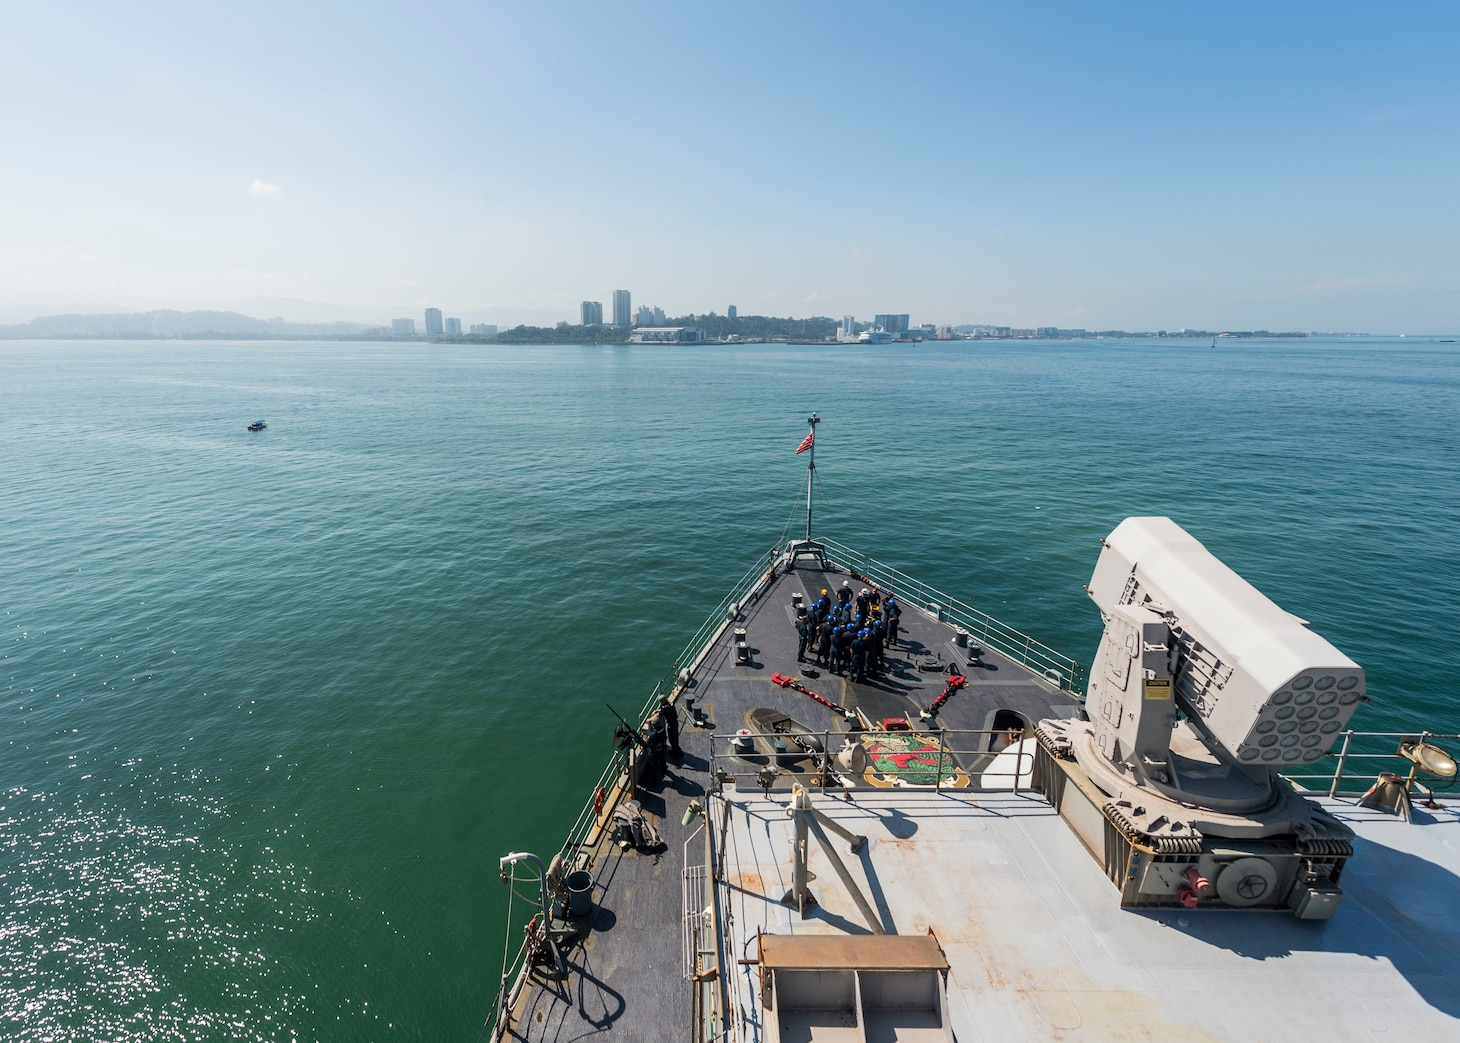 190223-N-WI365-1123 KOTA KINABALU, Malaysia (Feb. 23, 2019) – The amphibious dock landing ship USS Ashland (LSD 48) is anchored out off the coast of Kota Kinabalu, Malaysia. Ashland, part of the Wasp Amphibious Ready Group, with embarked 31st Marine Expeditionary Unit, is operating in the Indo-Pacific region to enhance interoperability with partners and serve as a ready-response force for any type of contingency. (U.S. Navy photo by Mass Communication Specialist 2nd Class Markus Castaneda)